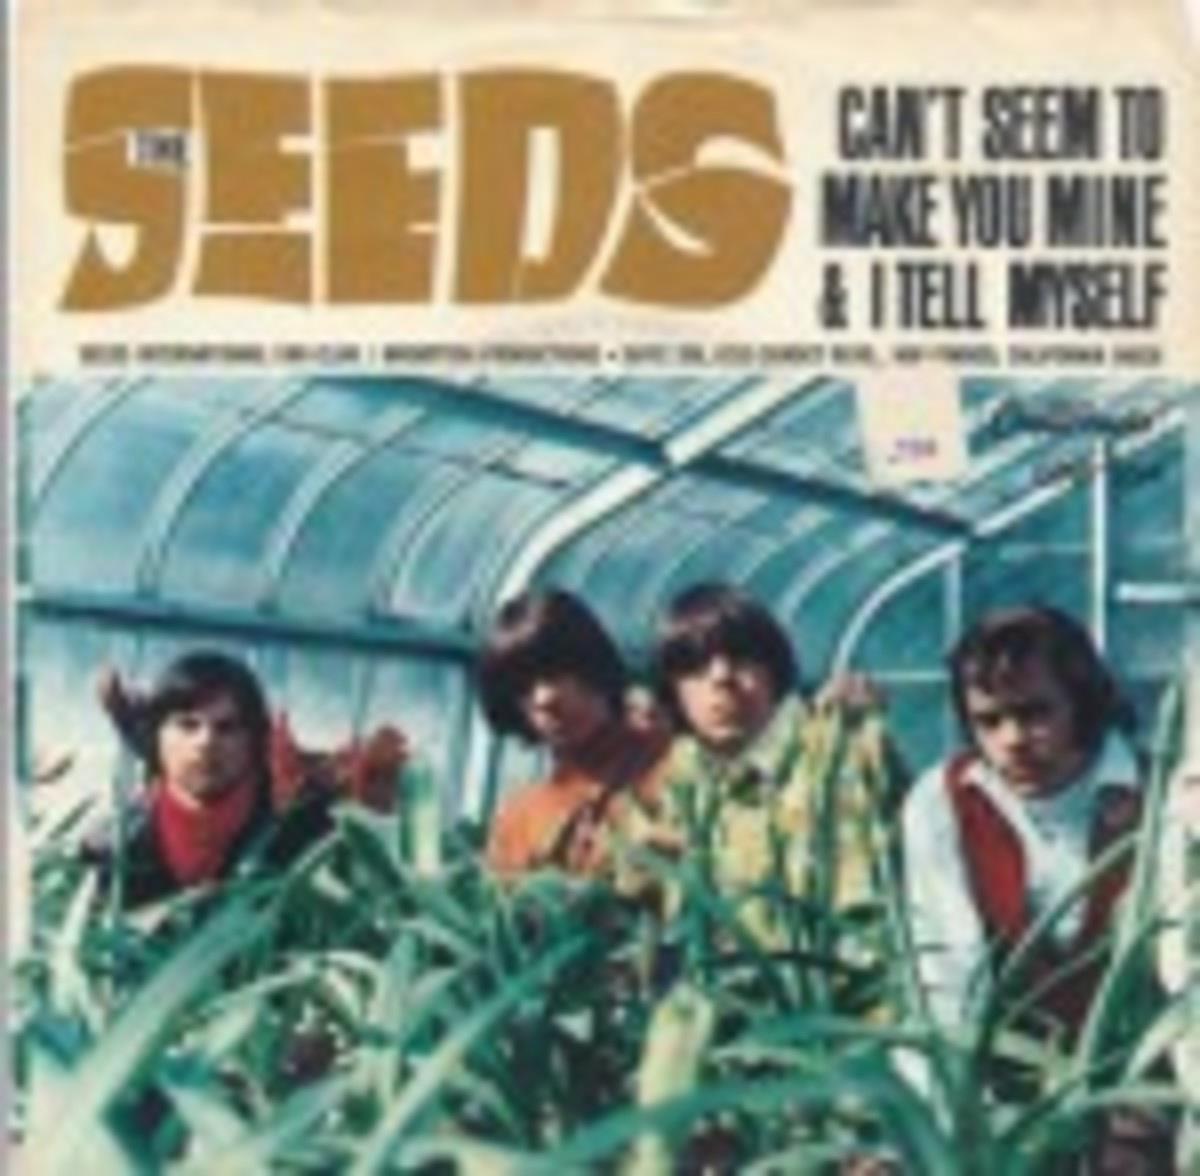 The Seeds Can't Seem To Make You Mine picture sleeve